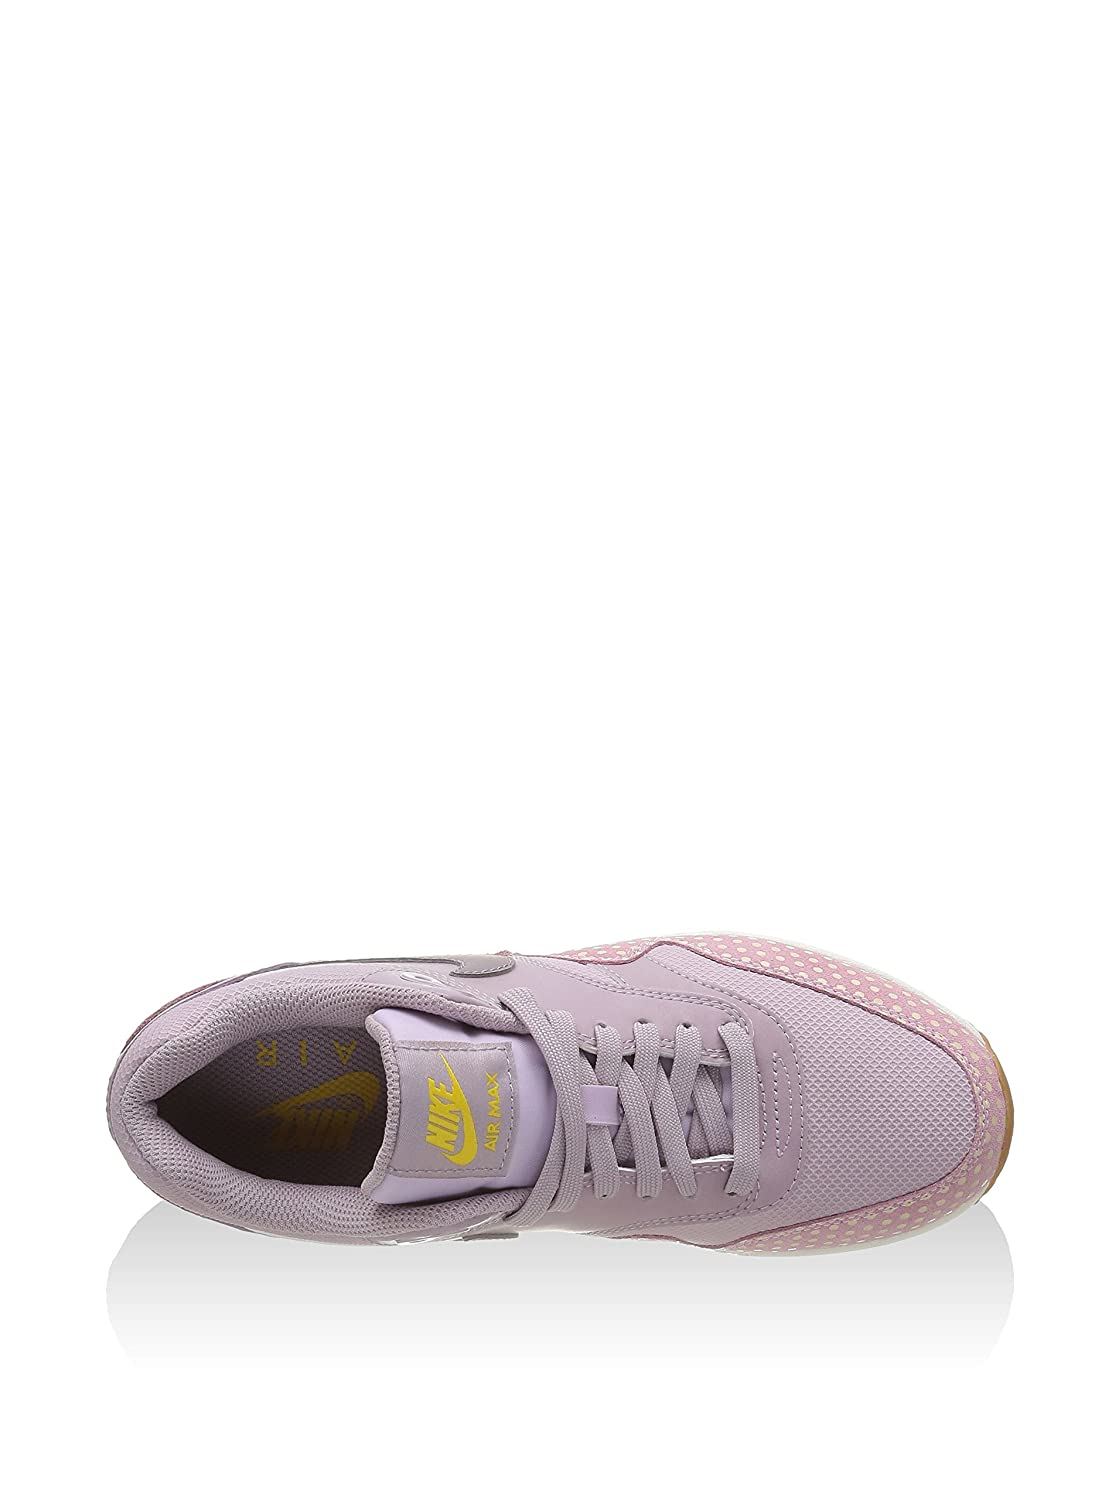 Nike Womens Air Max 1 Ultra Essential Plum//Varsity Maize//White 704993-501